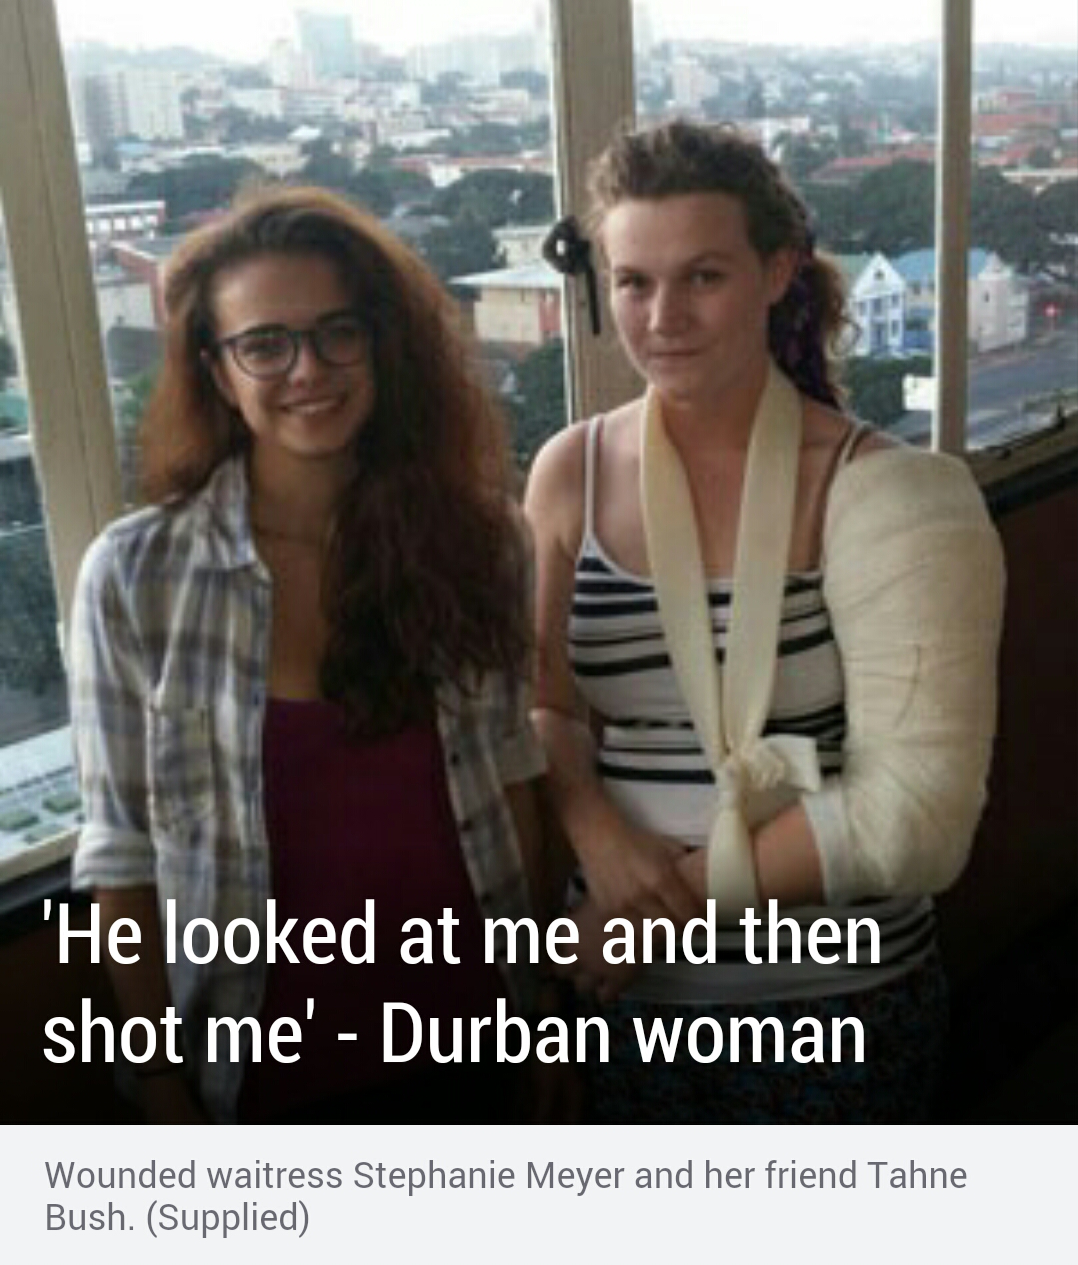 #ATTACK: Afrikaner woman, Stephanie Meyer, 22, was shot when she and a friend rushed to the aid of a man who had been shot in the face by a black man during a carjacking